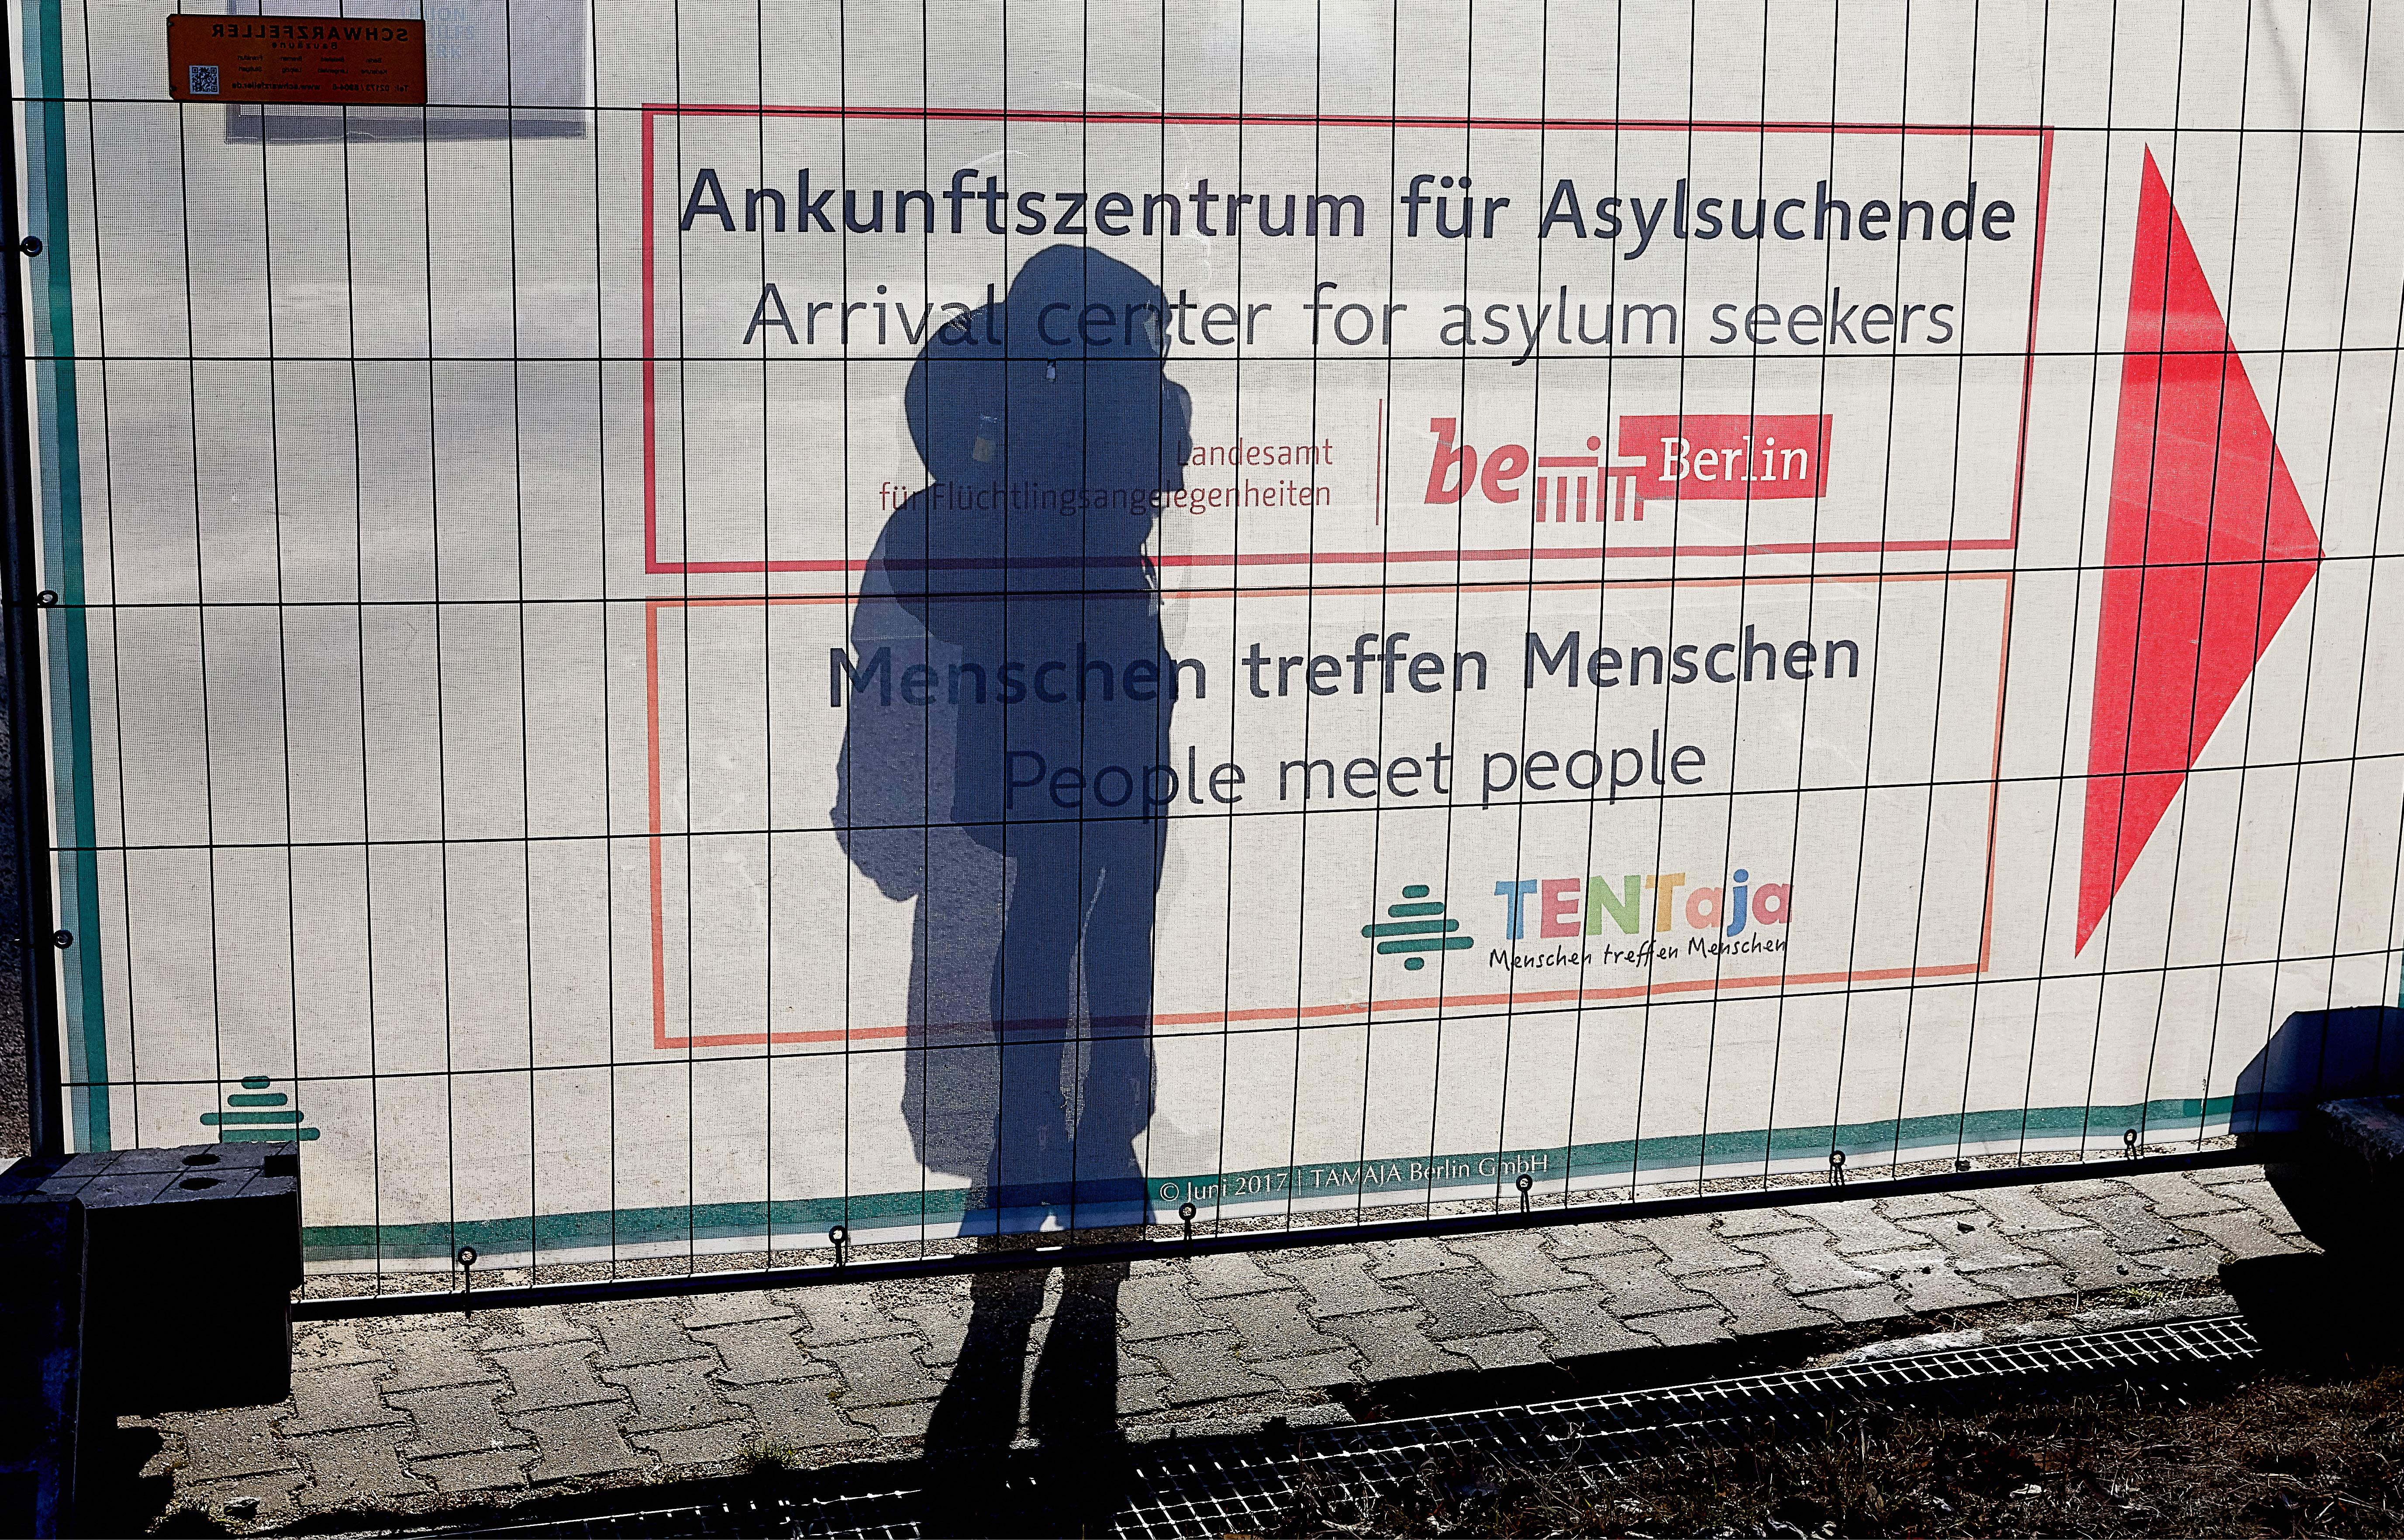 Arbeitsagentur Indeed Germany S Syrian Refugee Integration Experiment